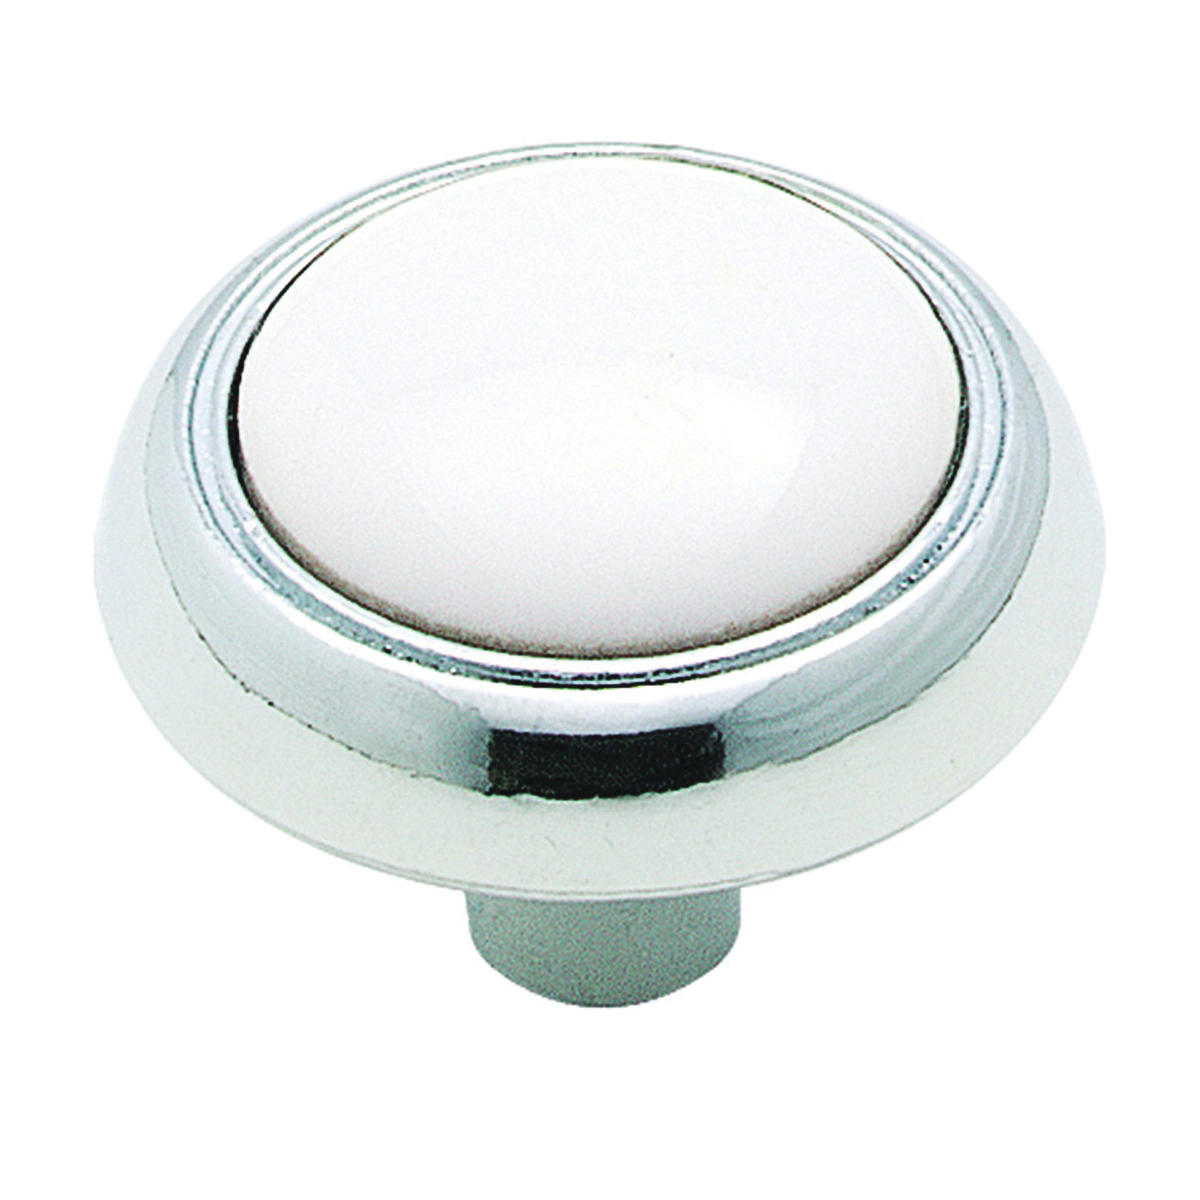 Picture of Amerock 262WCH Cabinet Knob, 15/16 in Projection, Ceramic/Zinc, Polished Chrome